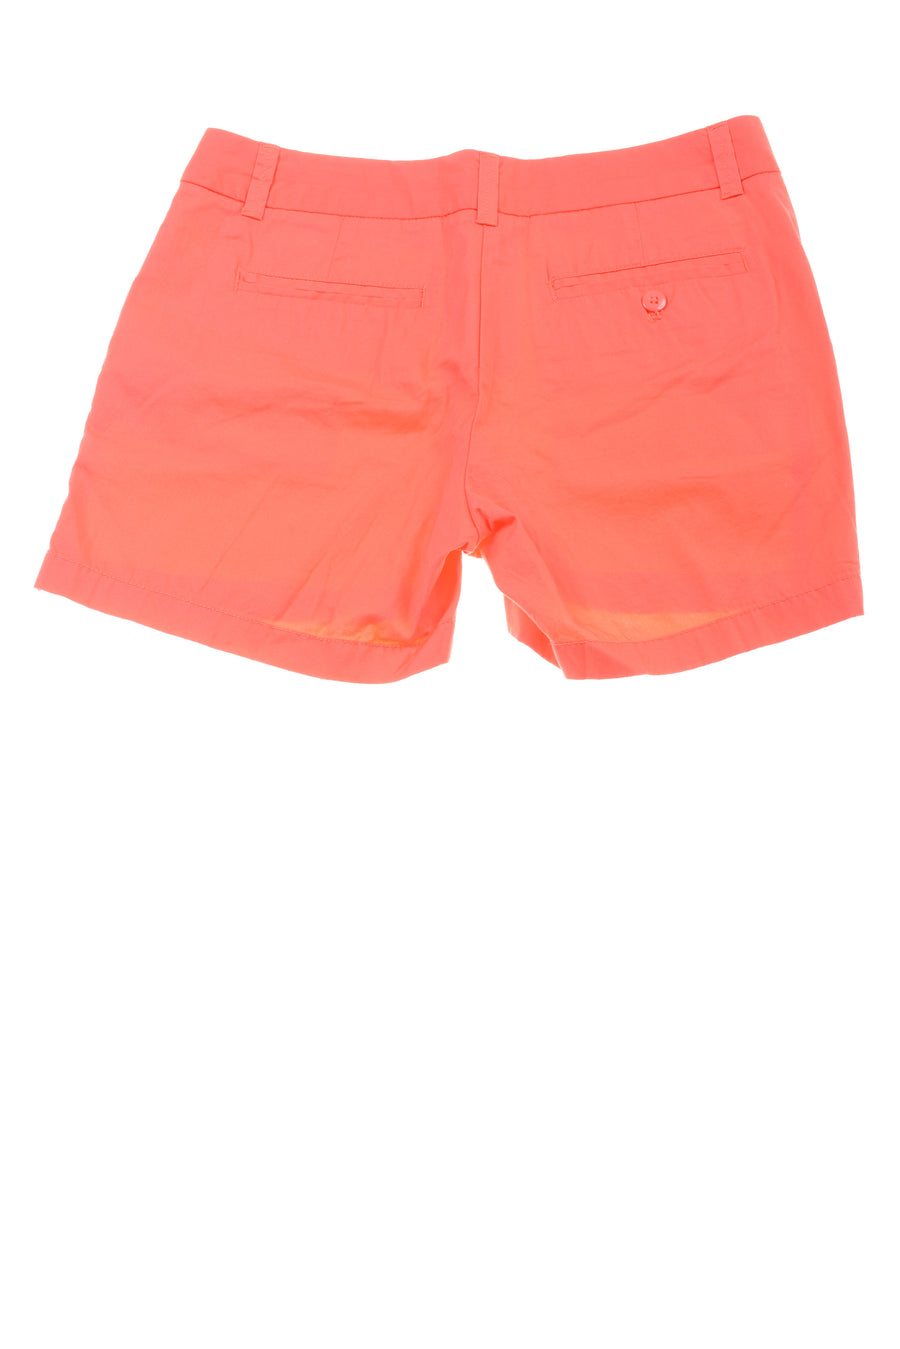 Women's Shorts By J. Crew